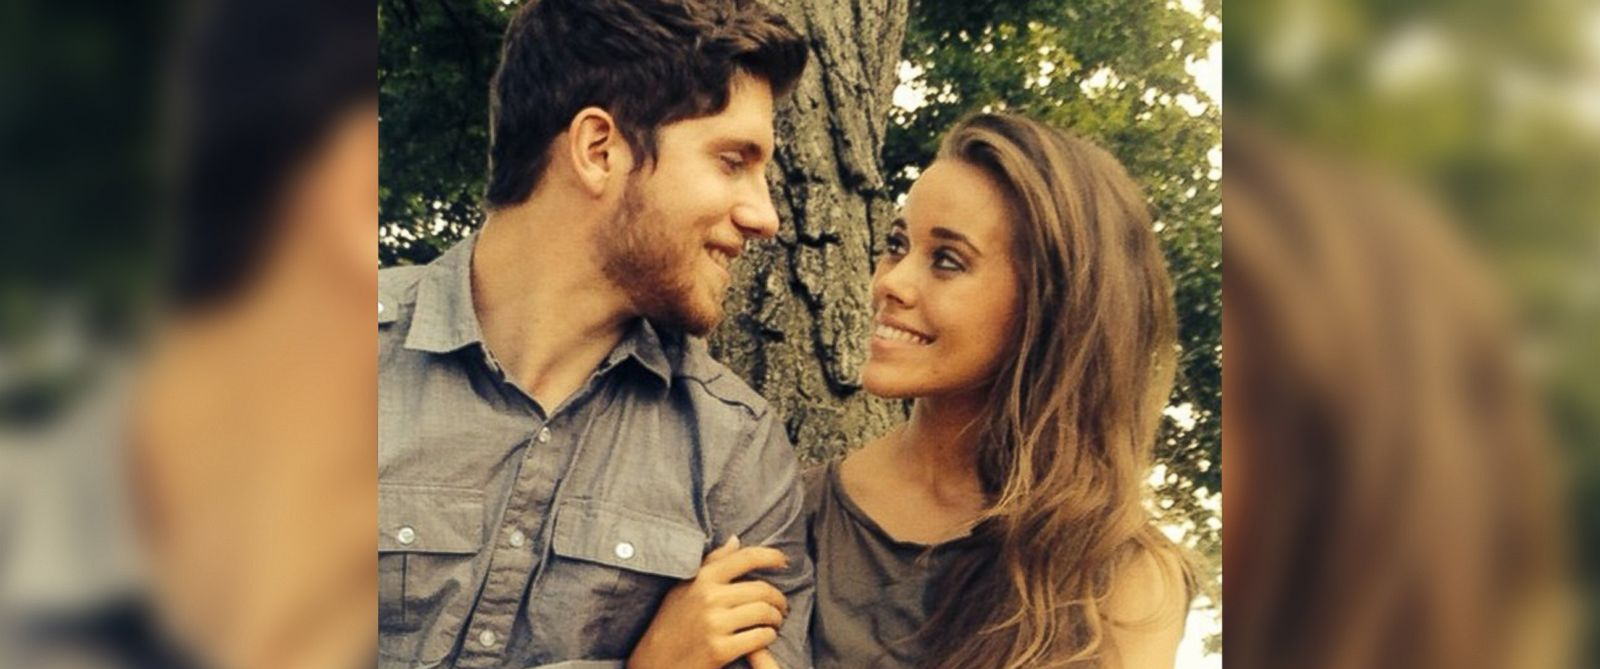 """PHOTO: Jessa Duggar and Ben Seewald of TLCs """"19 Kids and Counting"""" are pictured in a photo posted to Duggars Instagram account on Aug. 18, 2014, with the text, """"Time for some engagement photos!"""""""